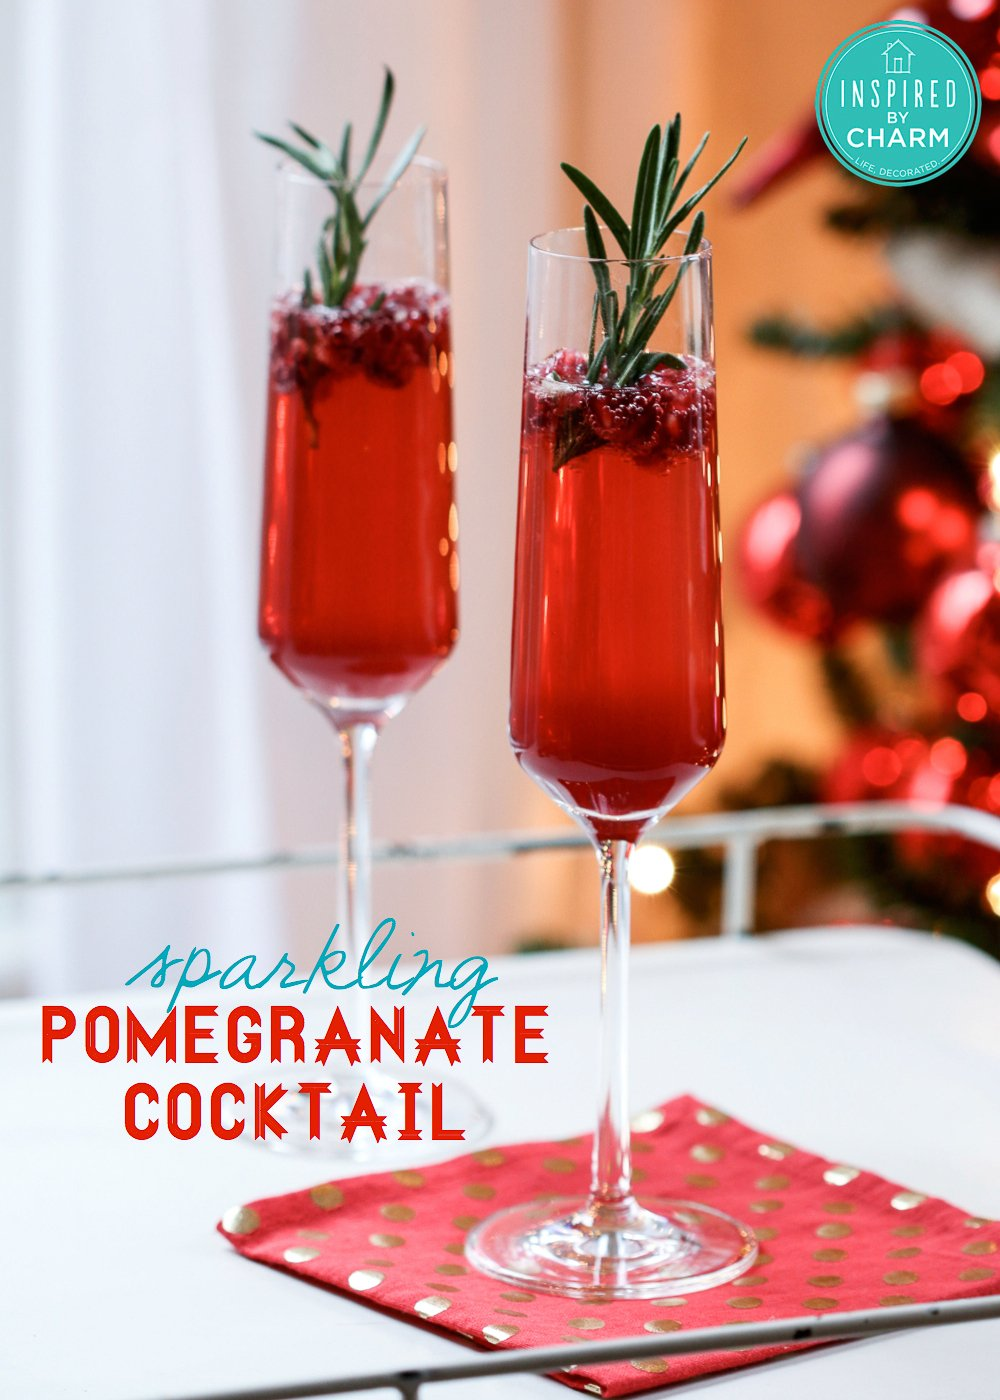 ... few ingredients, I came up with this Sparkling Pomegranate Cocktail